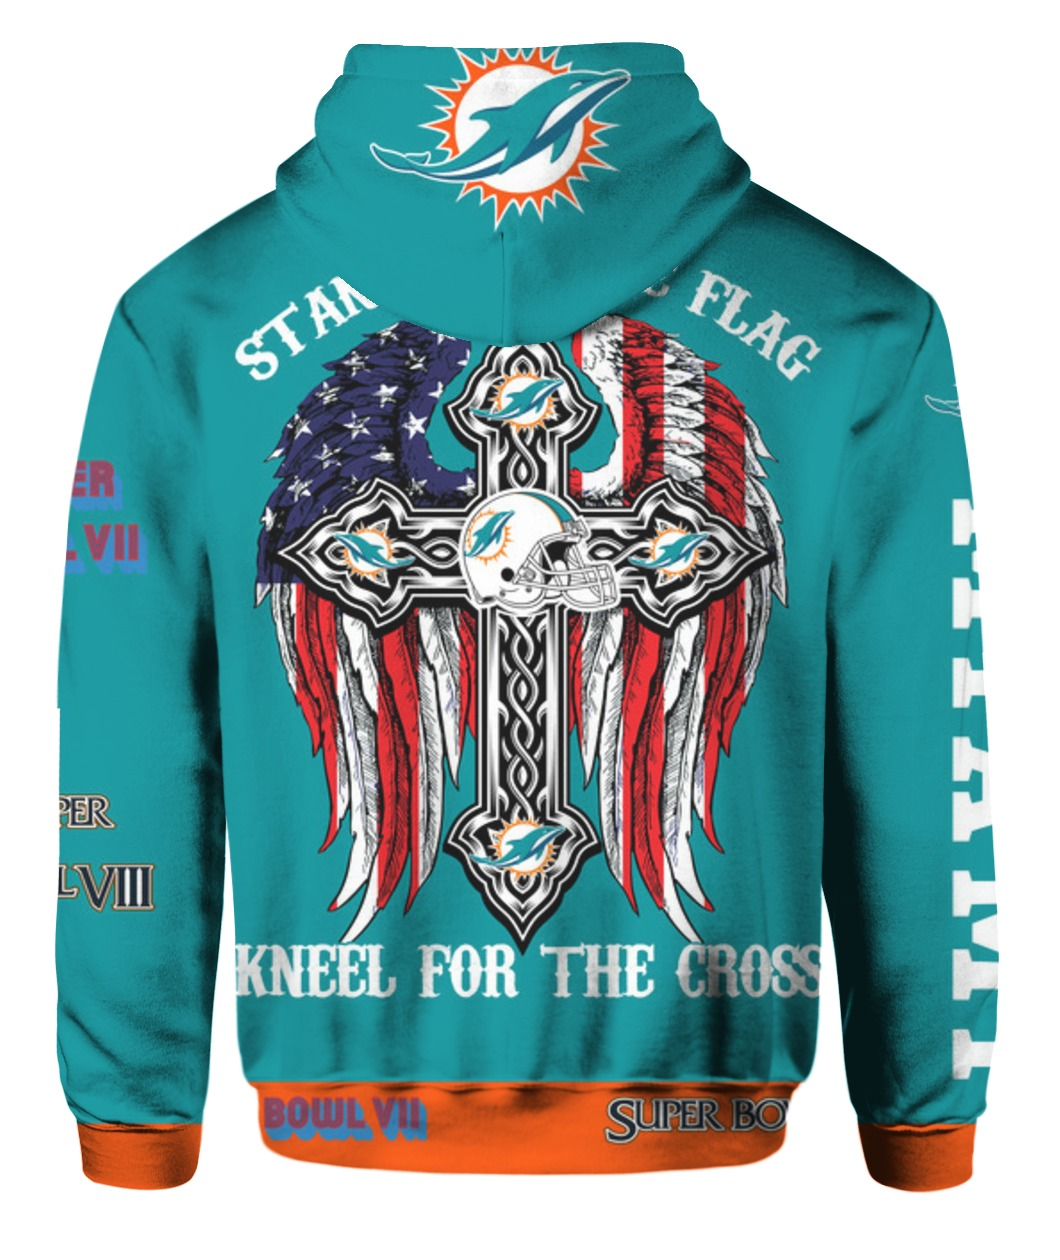 Stand for the flag kneel for the cross miami dolphins all over print hoodie - back